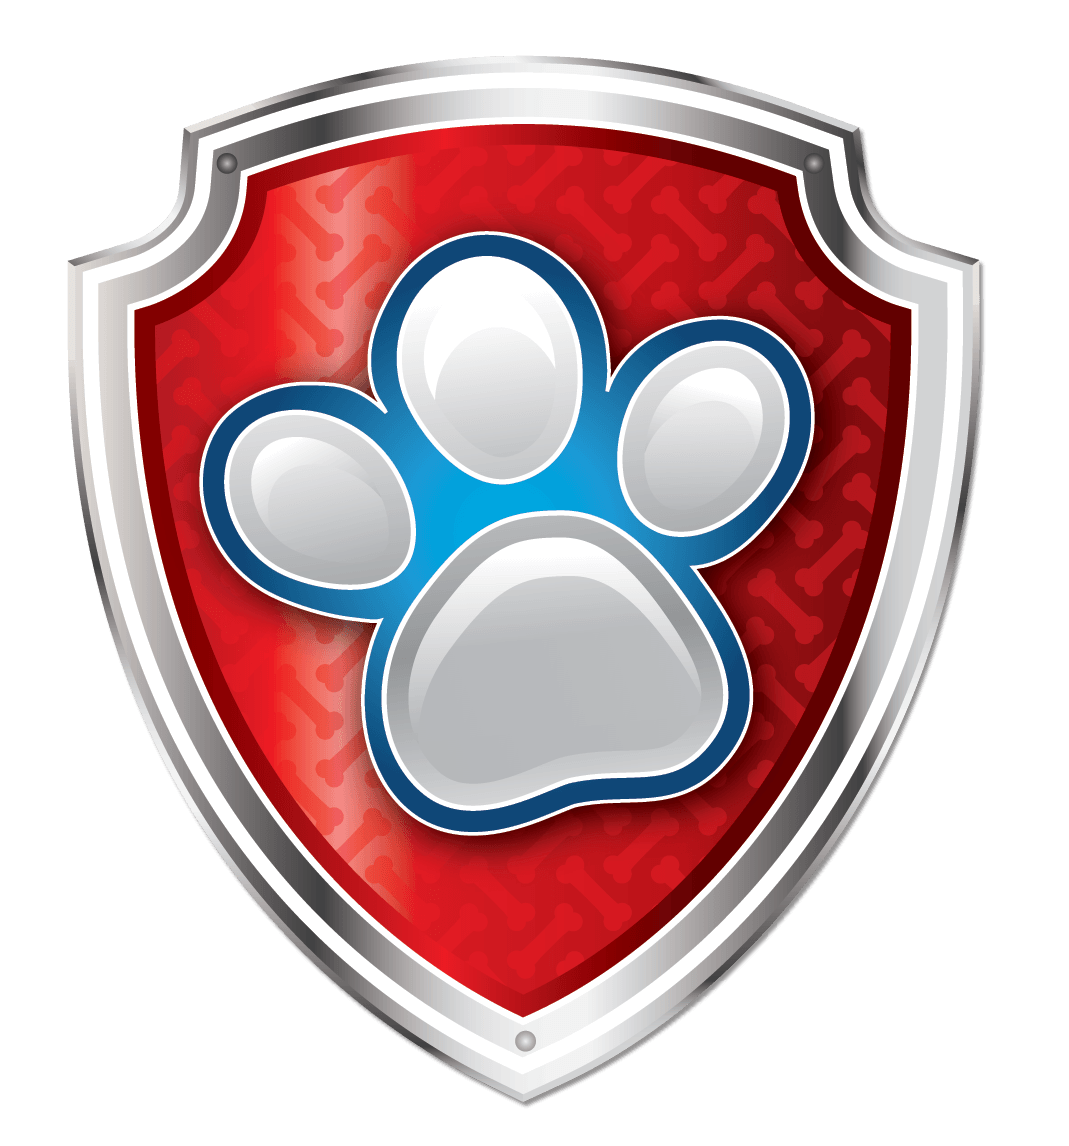 Paw patrol shield png. Puppy badge sea pups